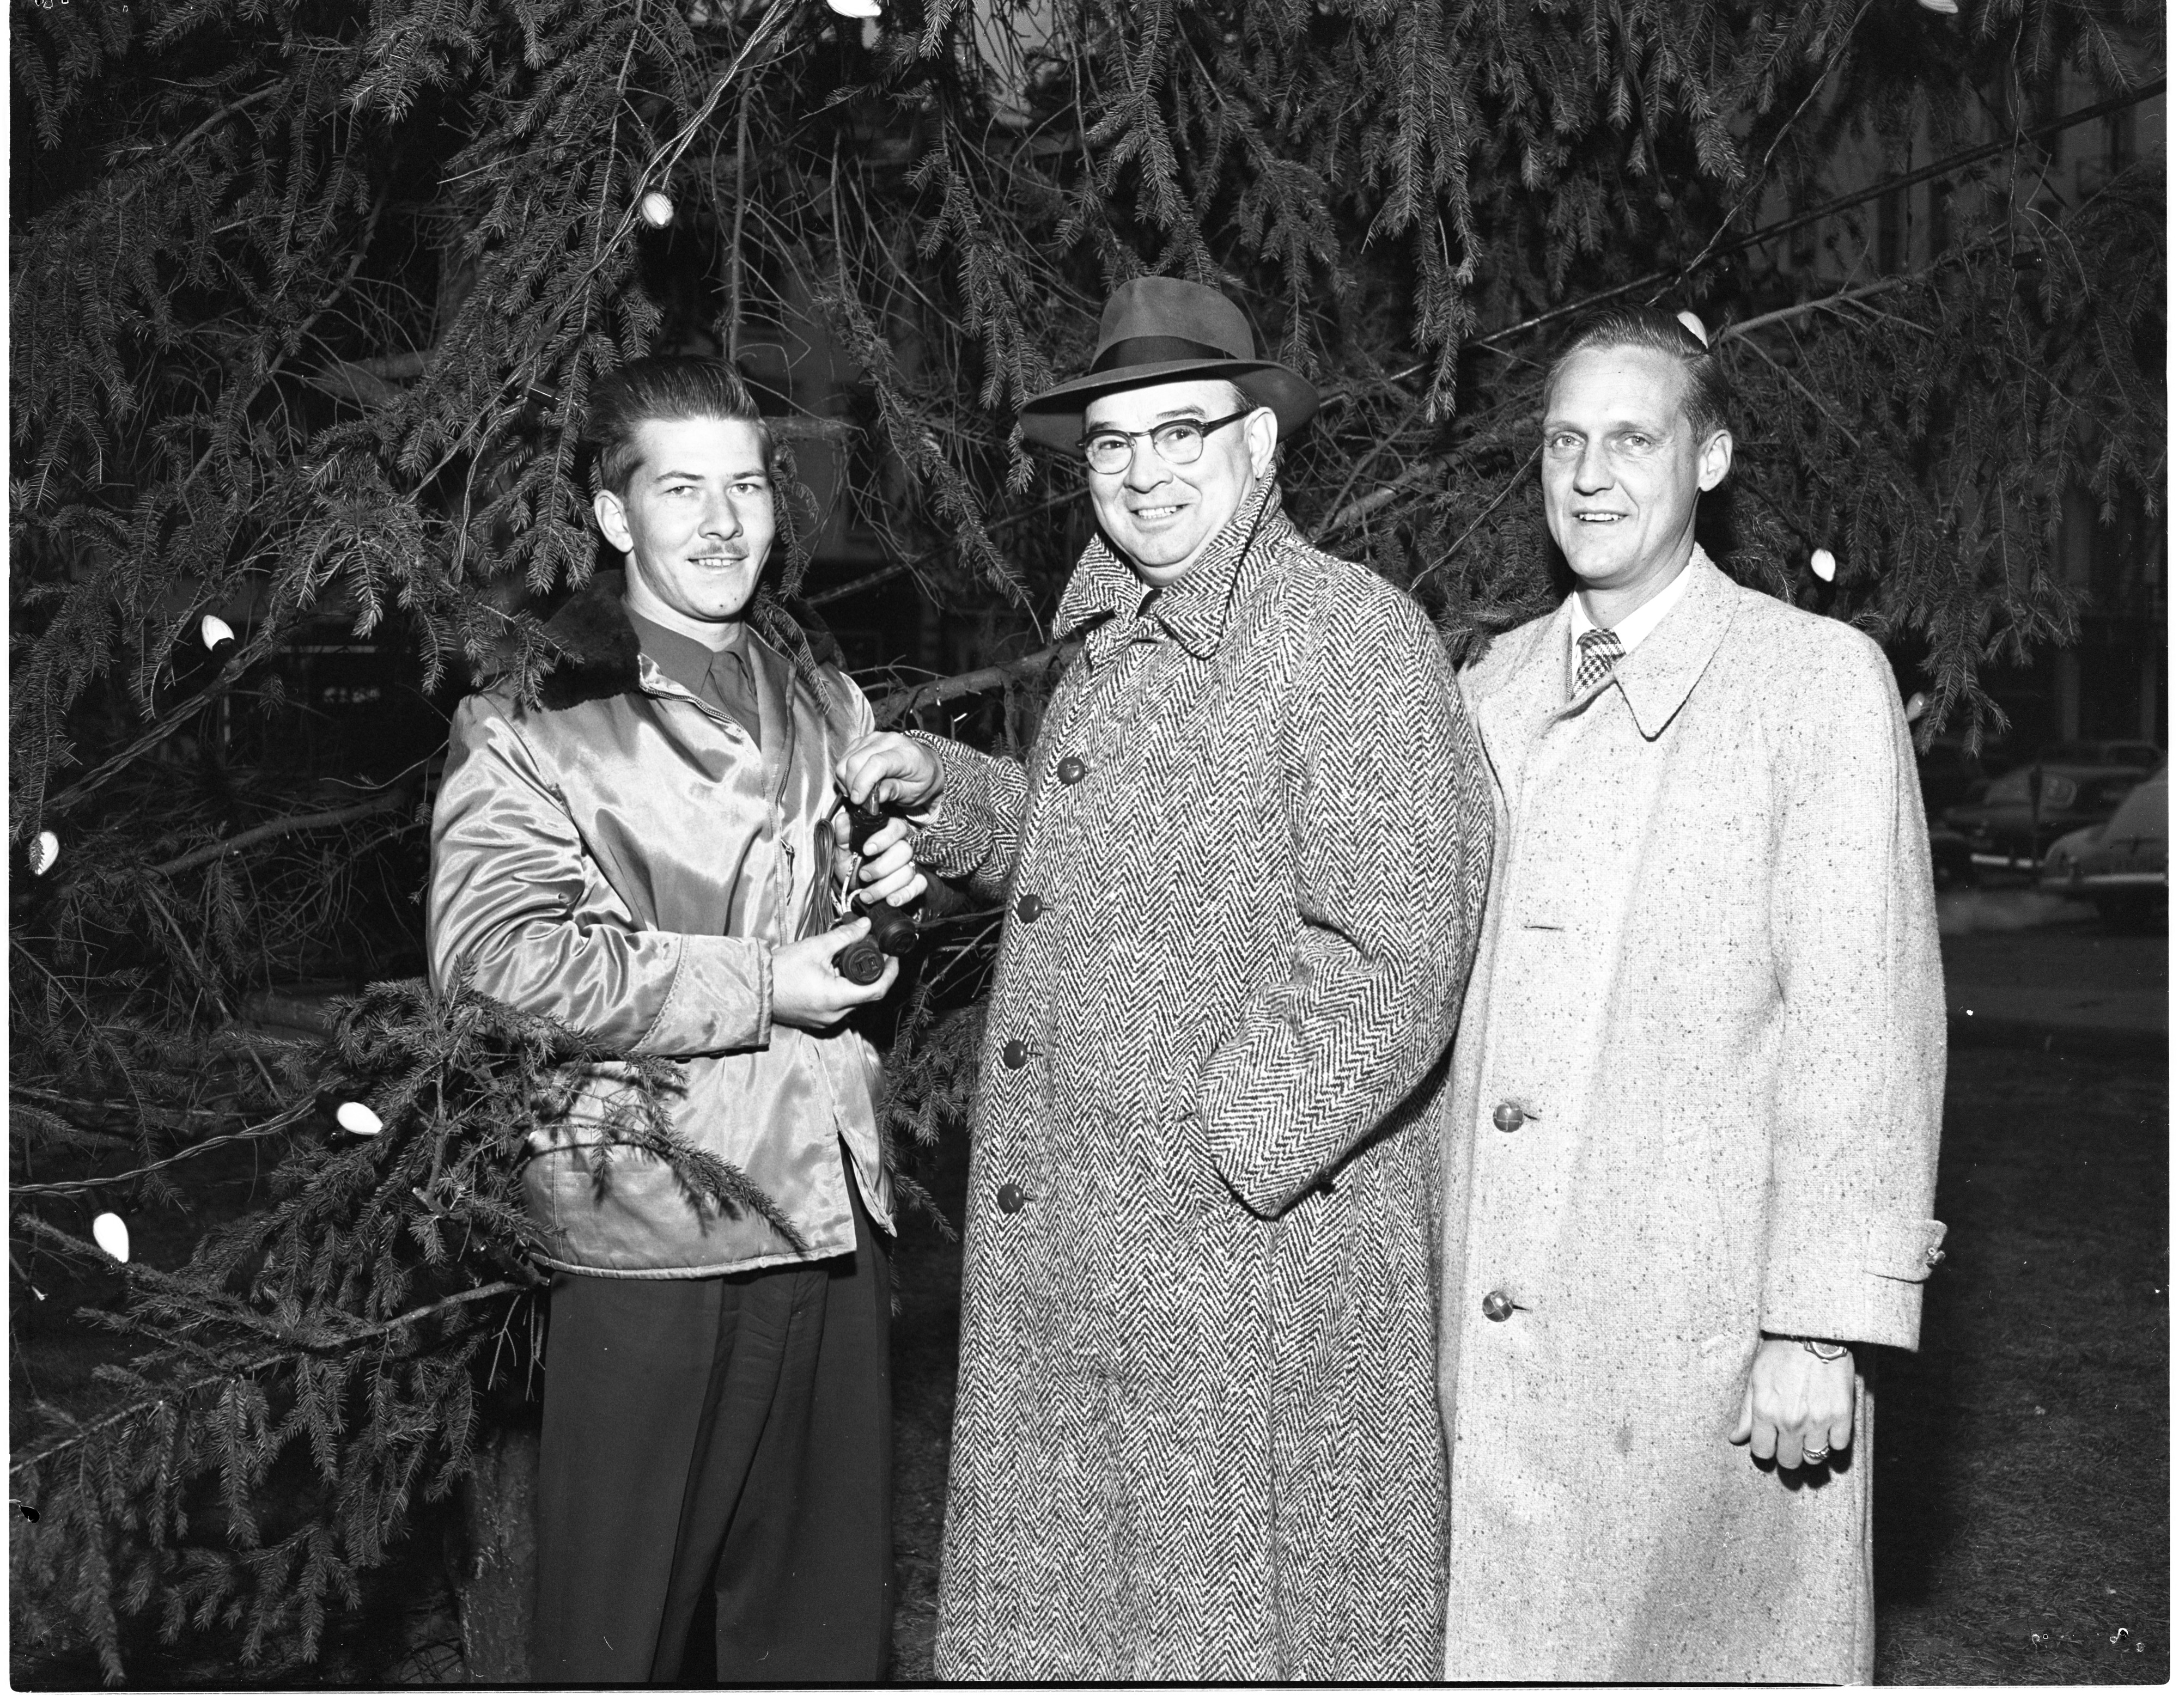 Mayor William E. Brown Jr. Lights Ann Arbor's Christmas Tree, December 1952 image